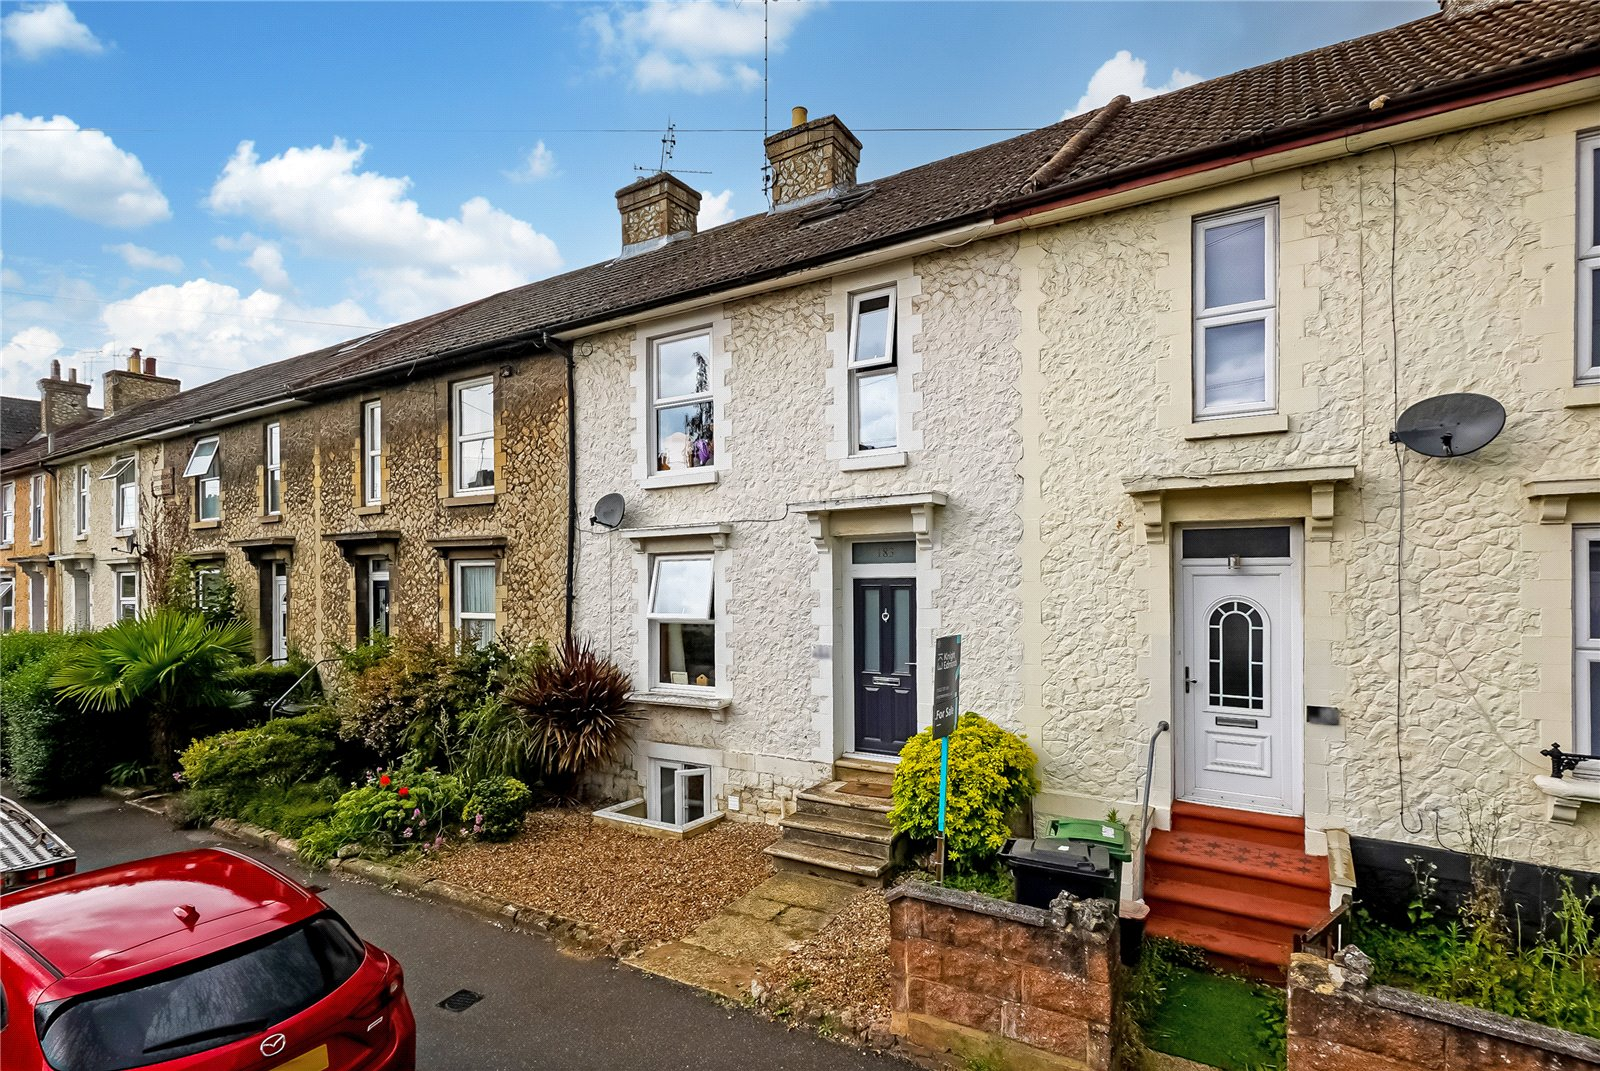 4 bed house for sale in Upper Fant Road, Maidstone, ME16